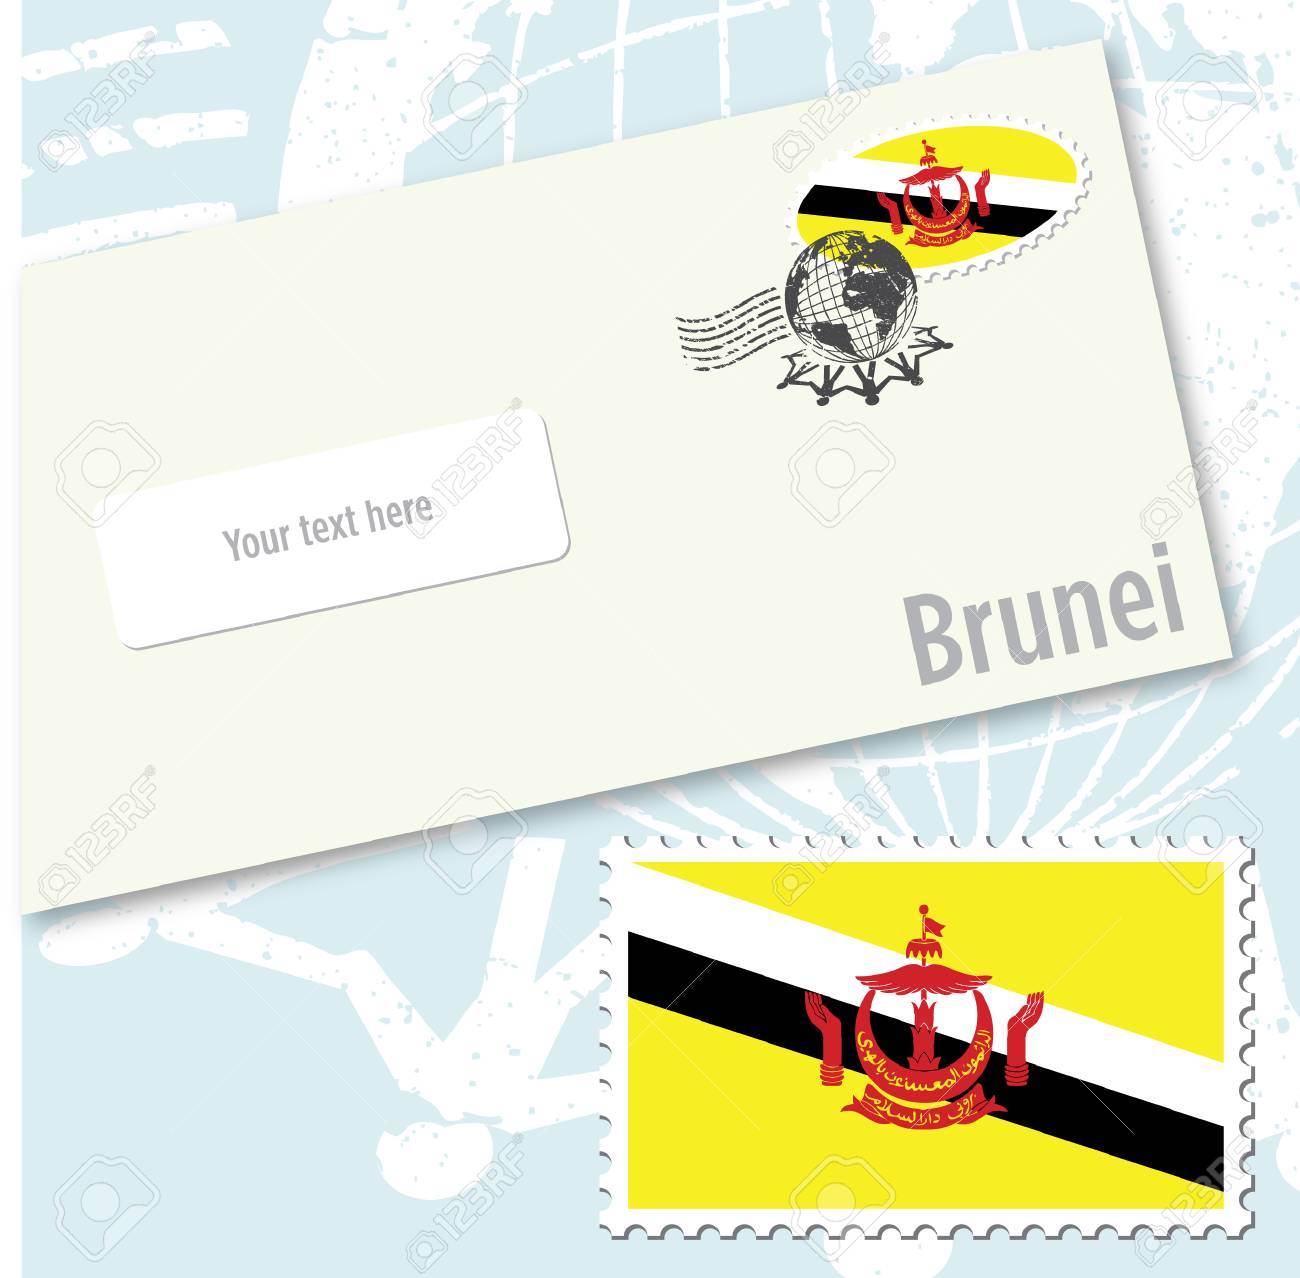 Brunei country flag stamp and envelope design